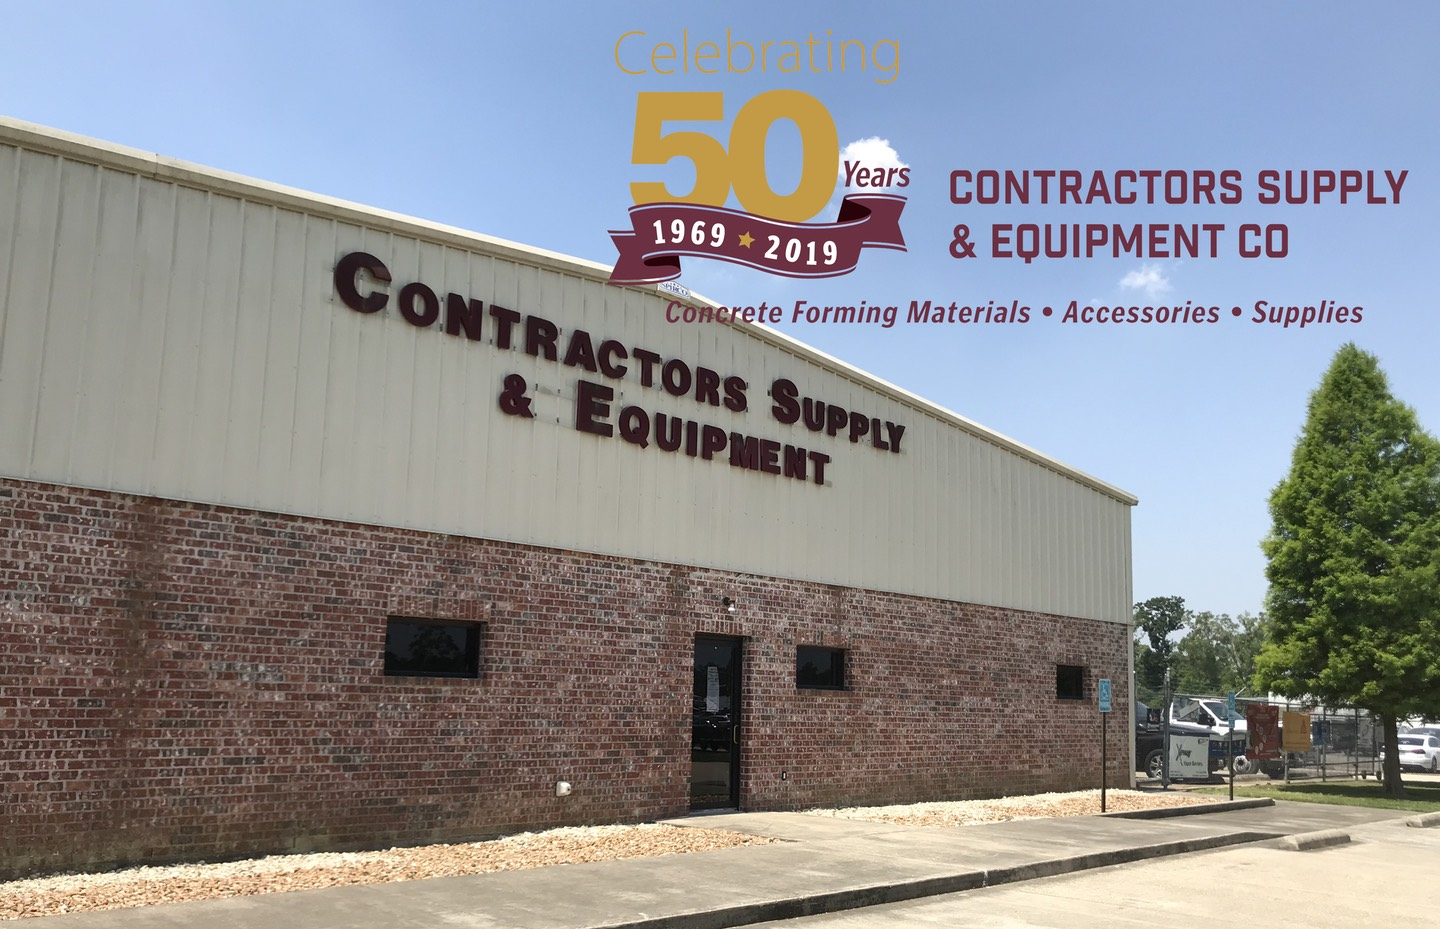 CS&E — Contractors Supply & Equipment